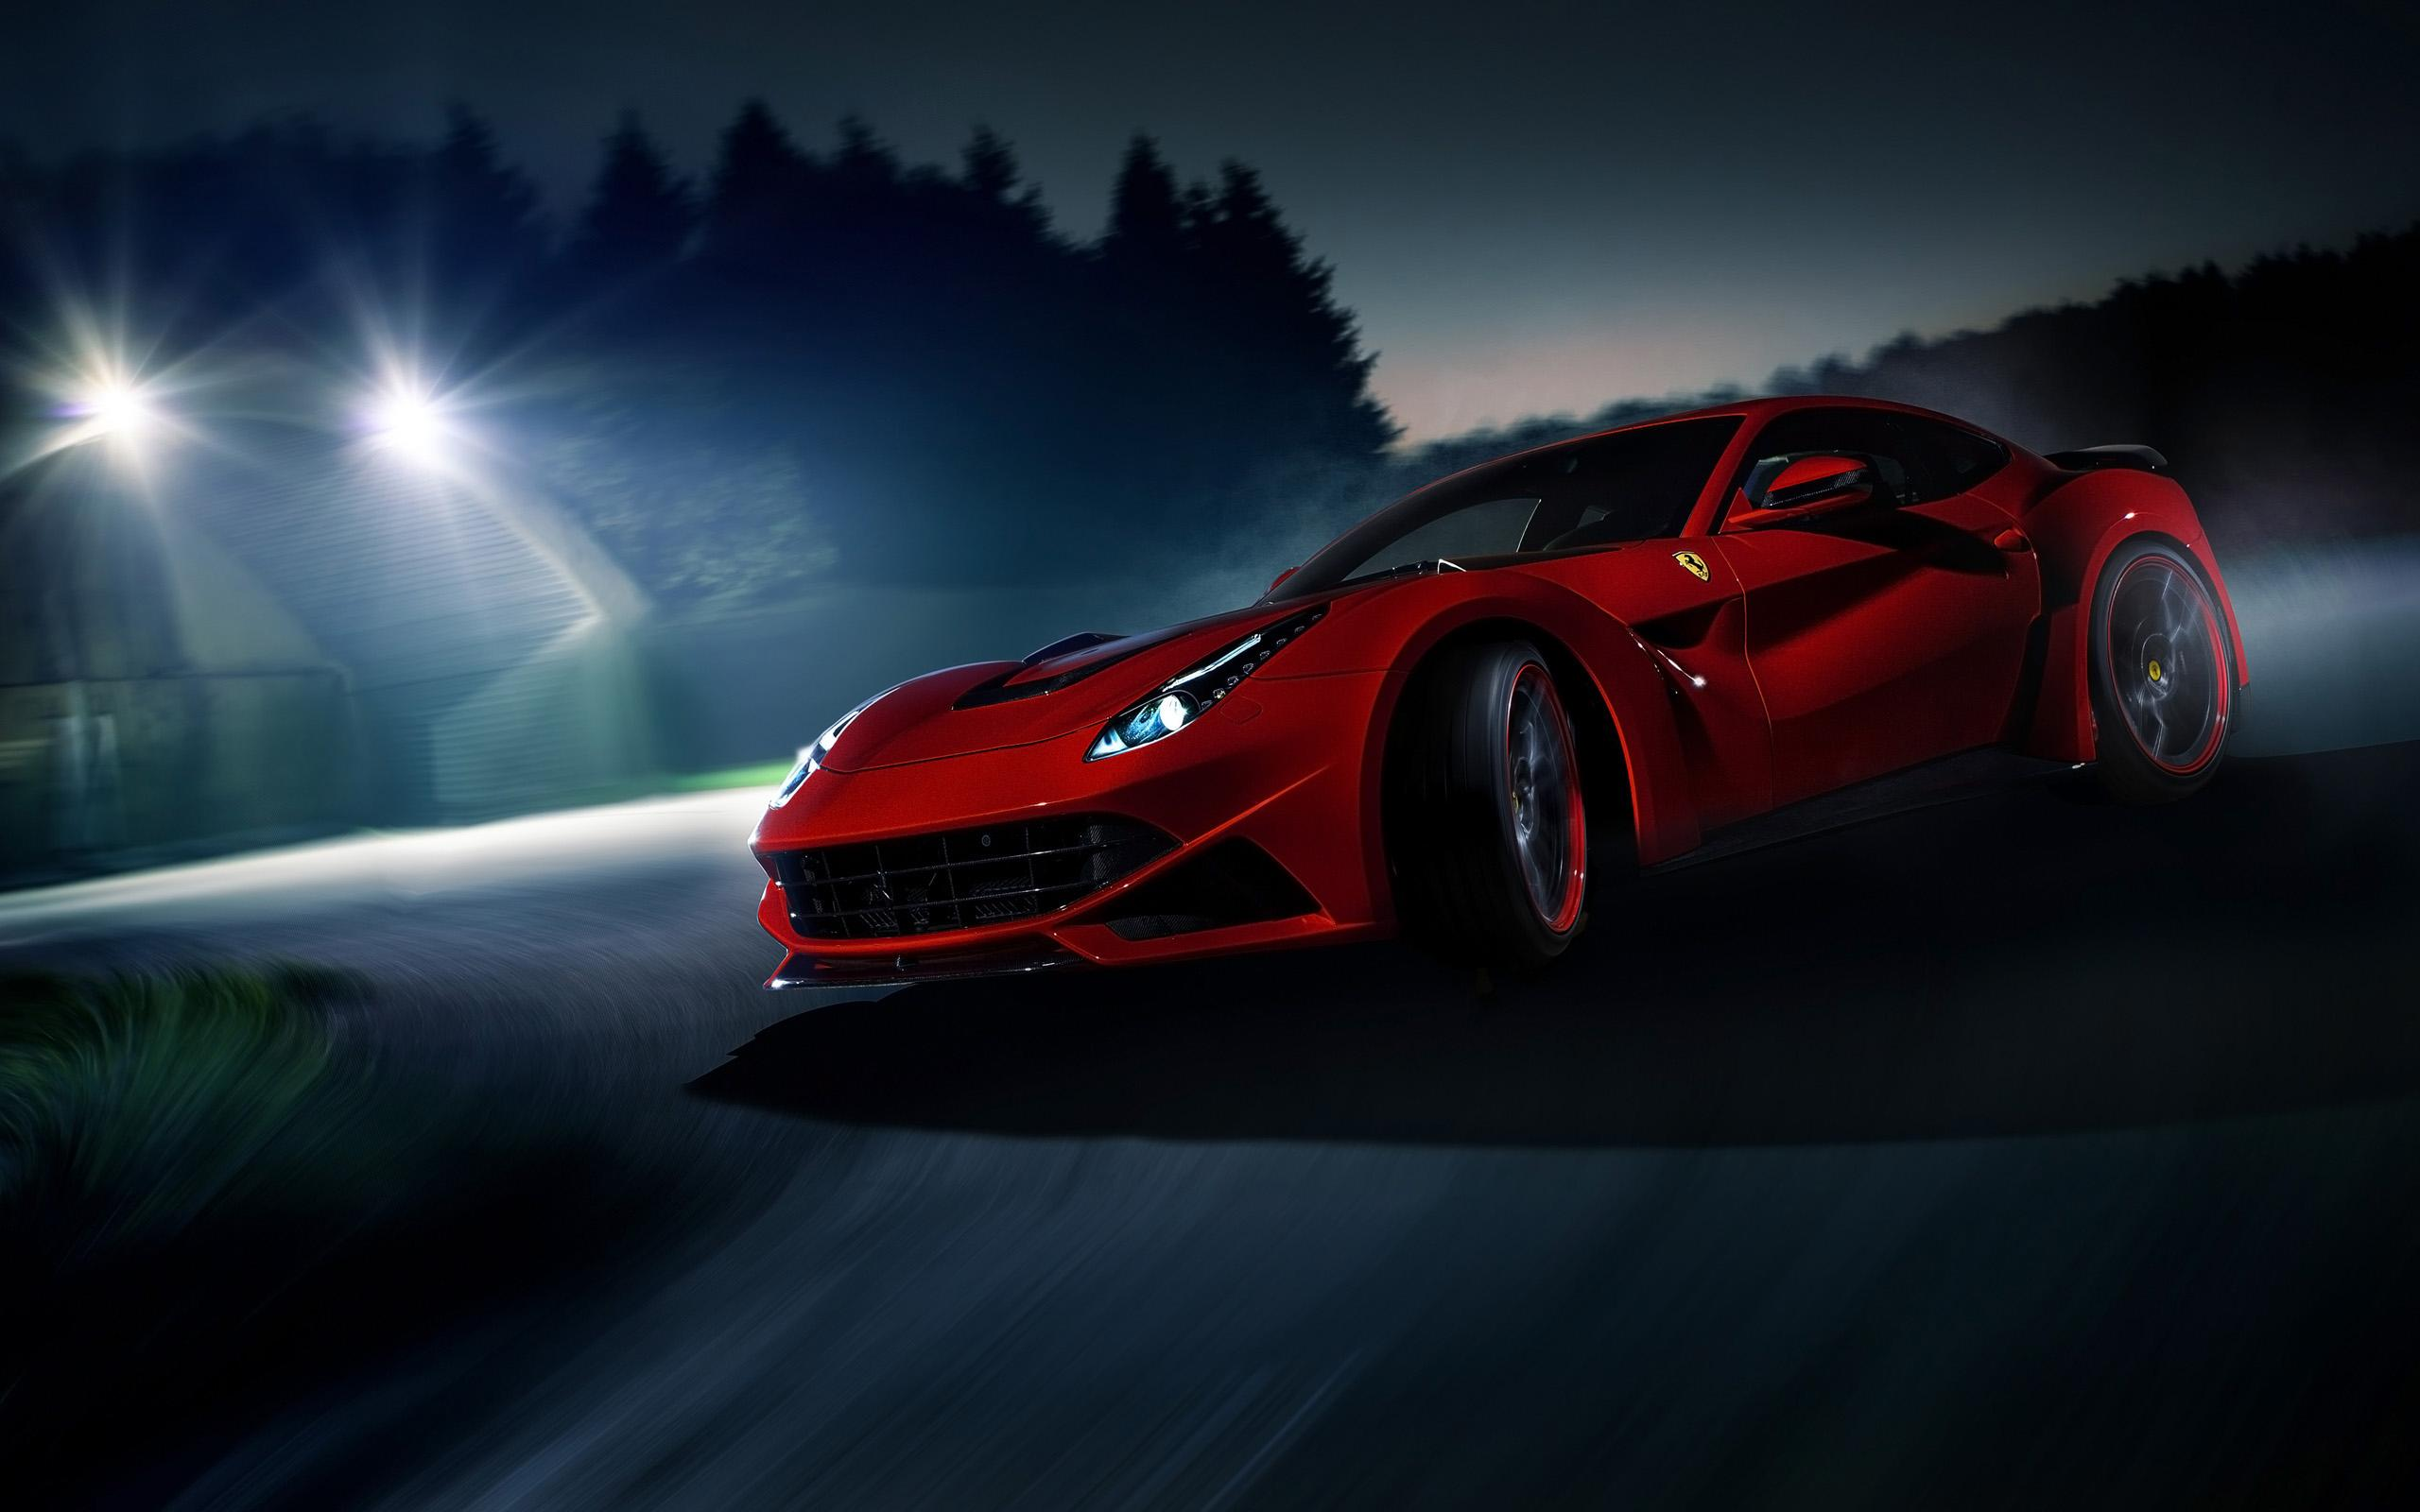 beautiful red ferrari wallpaper 36334